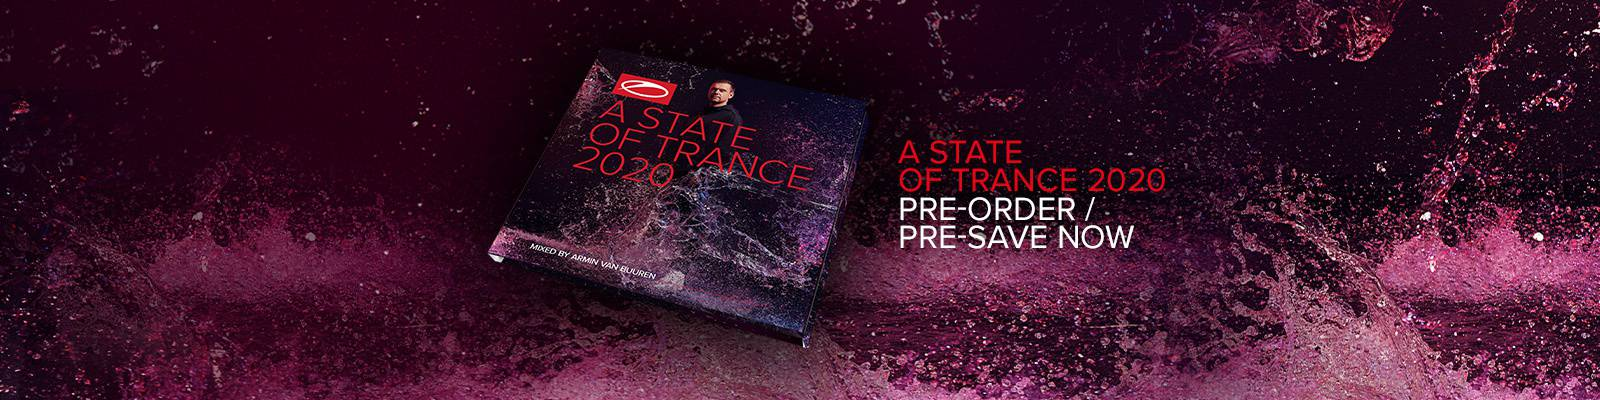 A State Of Trance 2020 (Mixed by Armin van Buuren) is now available for pre-order/pre-save!